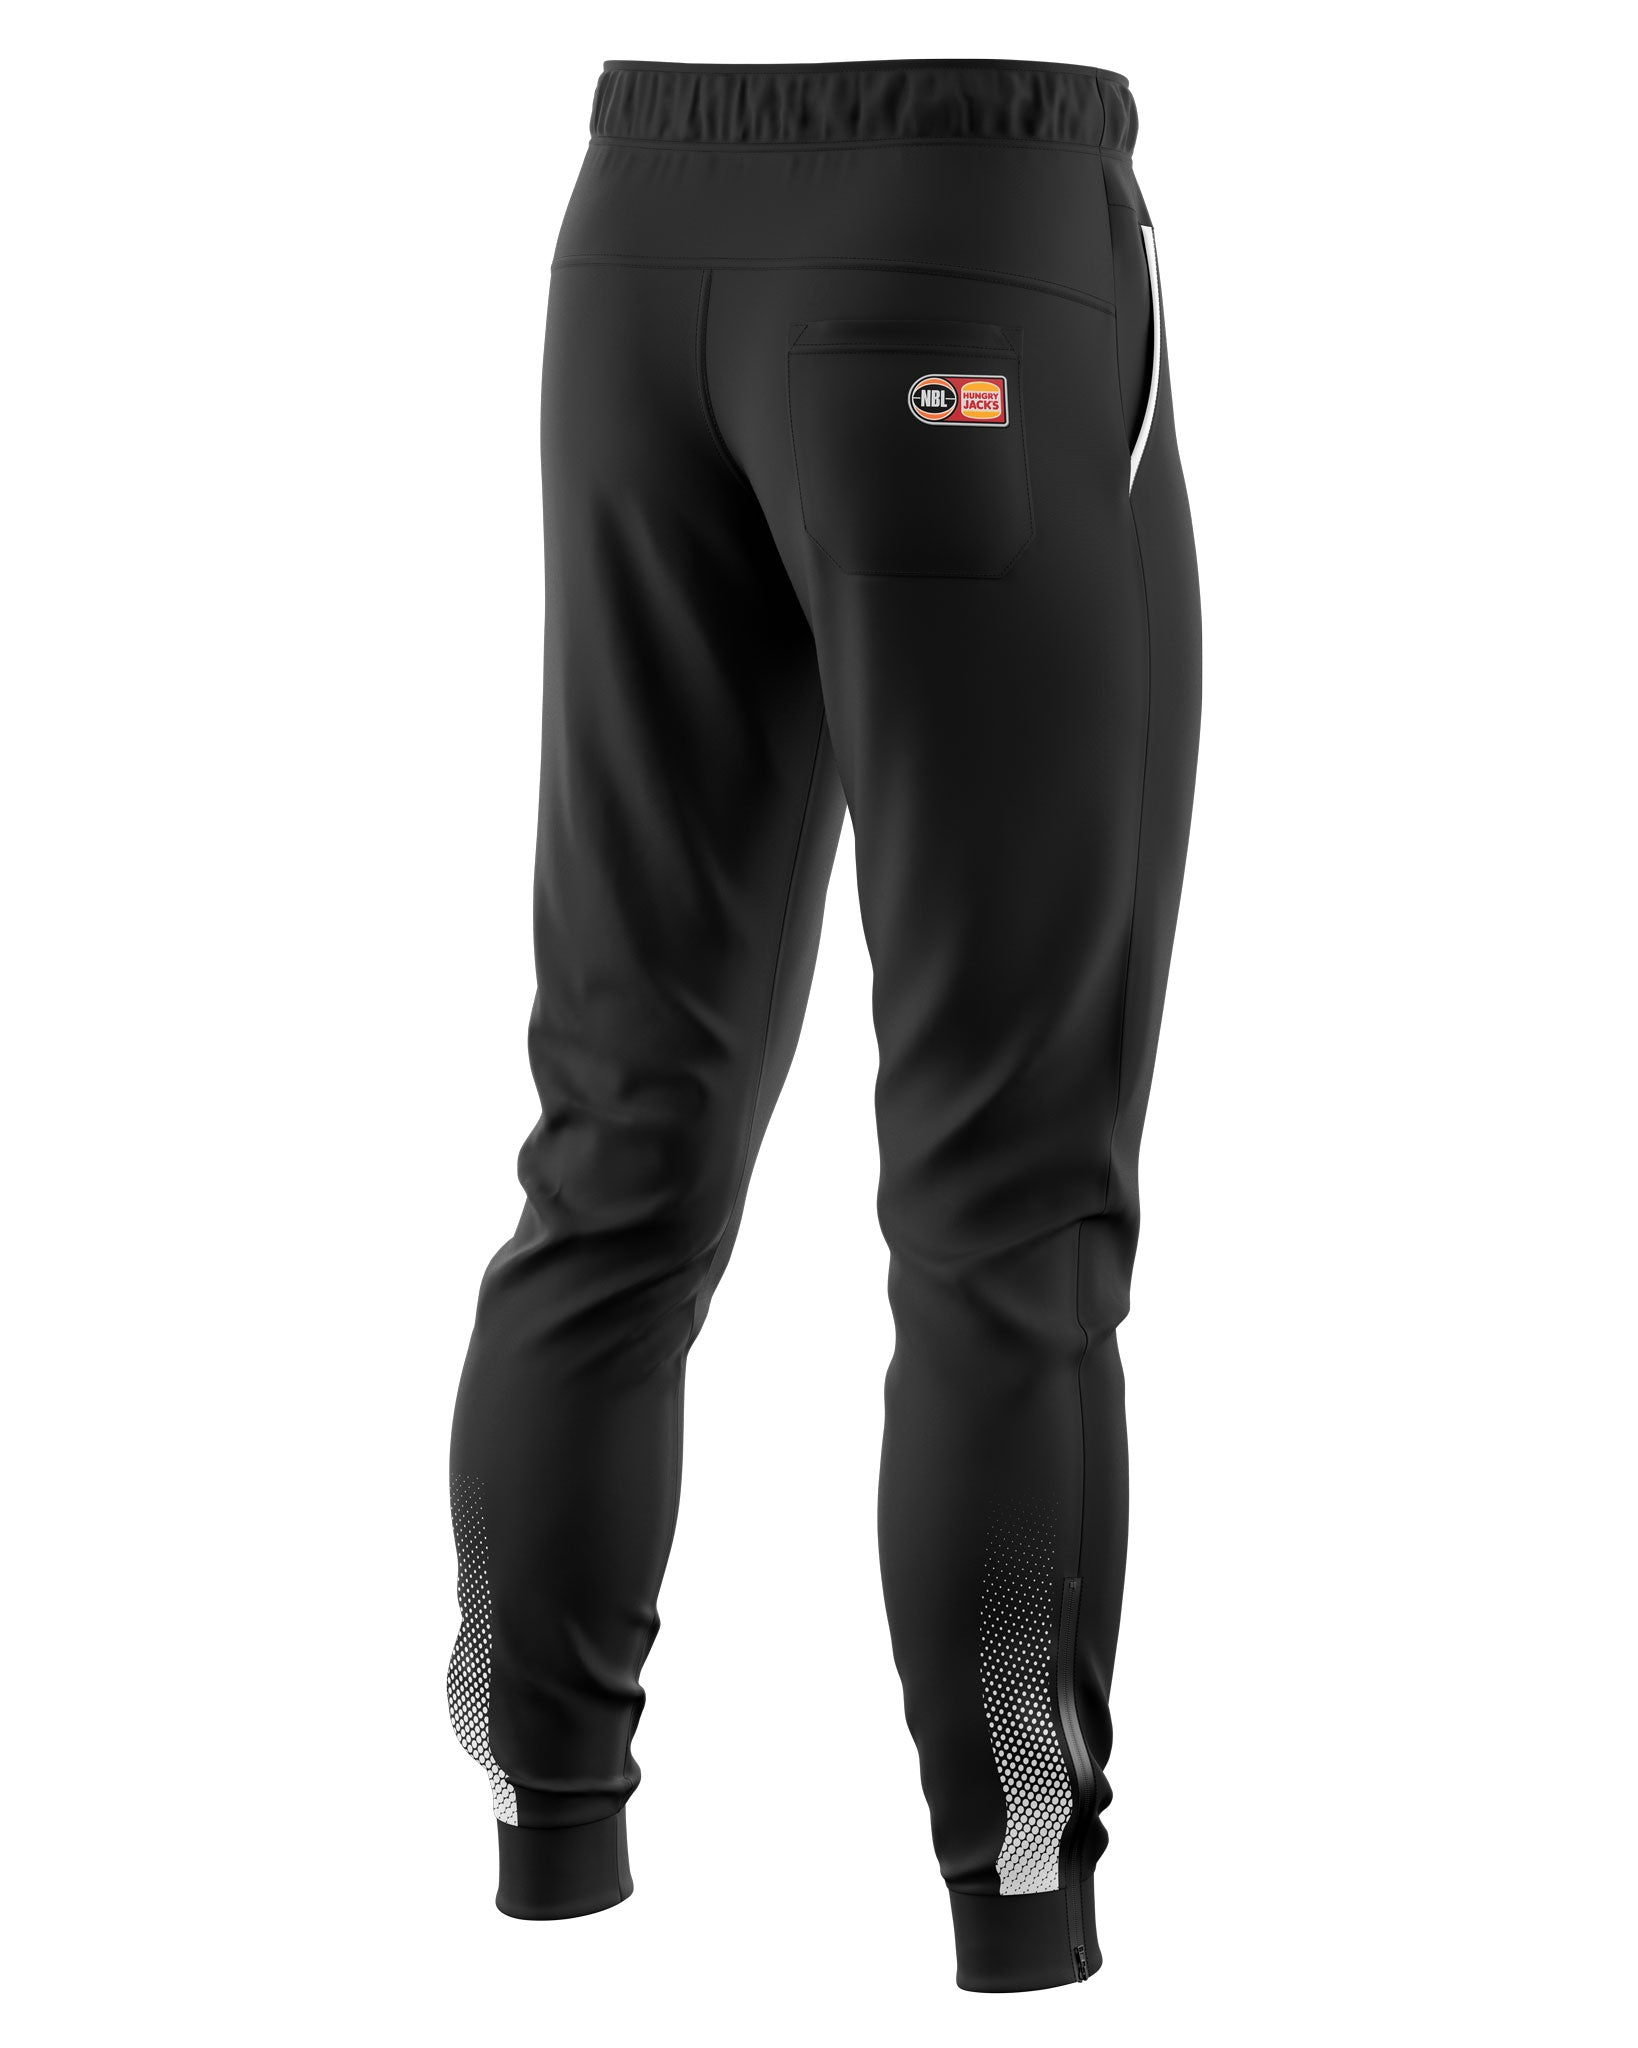 Melbourne United 20/21 Performance Trackpants